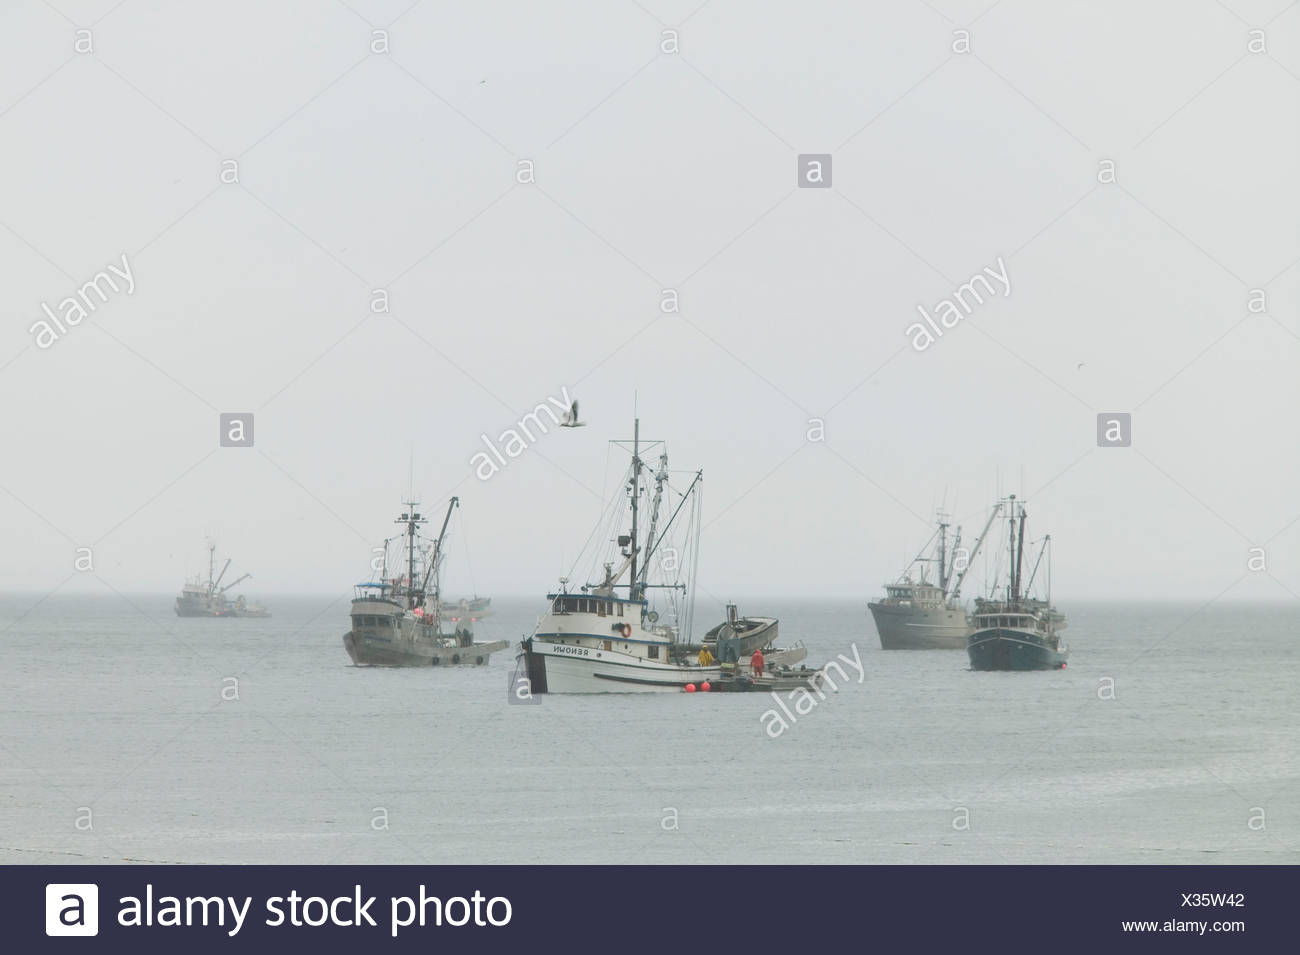 Herring fleet off of Phipp's Point, Hornby Island, British Columbia, Canada - Stock Image